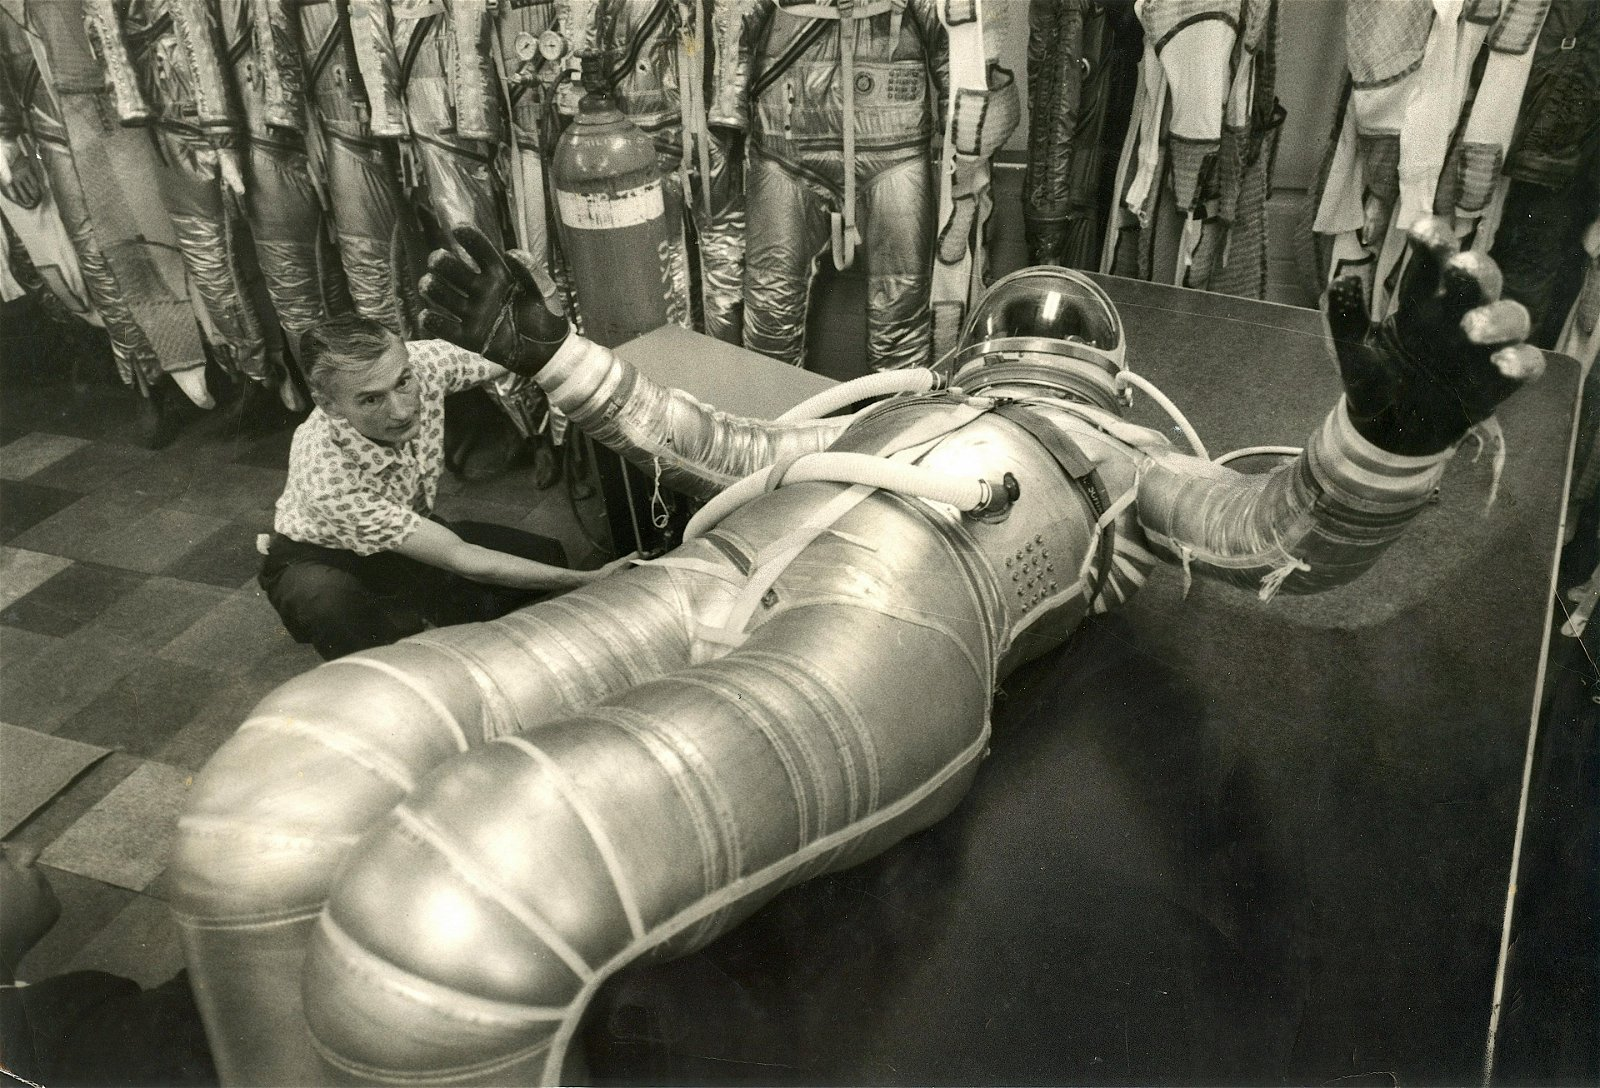 Vintage Rare Photo Space Astronauts Speculation 1950s